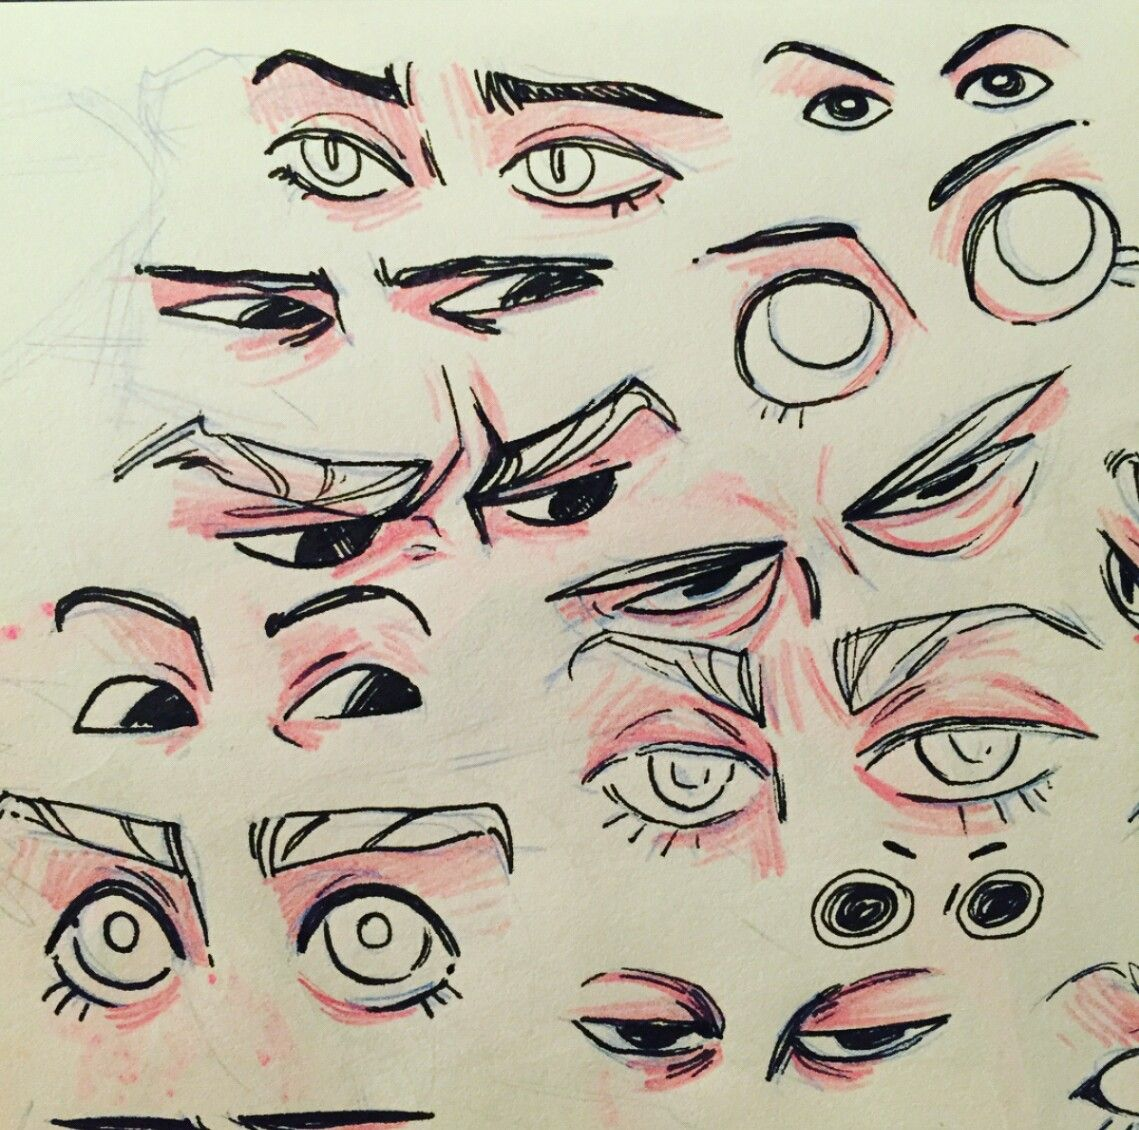 Eye Art Style Inspiration In 2020 Drawings Art Tutorials Art Sketches